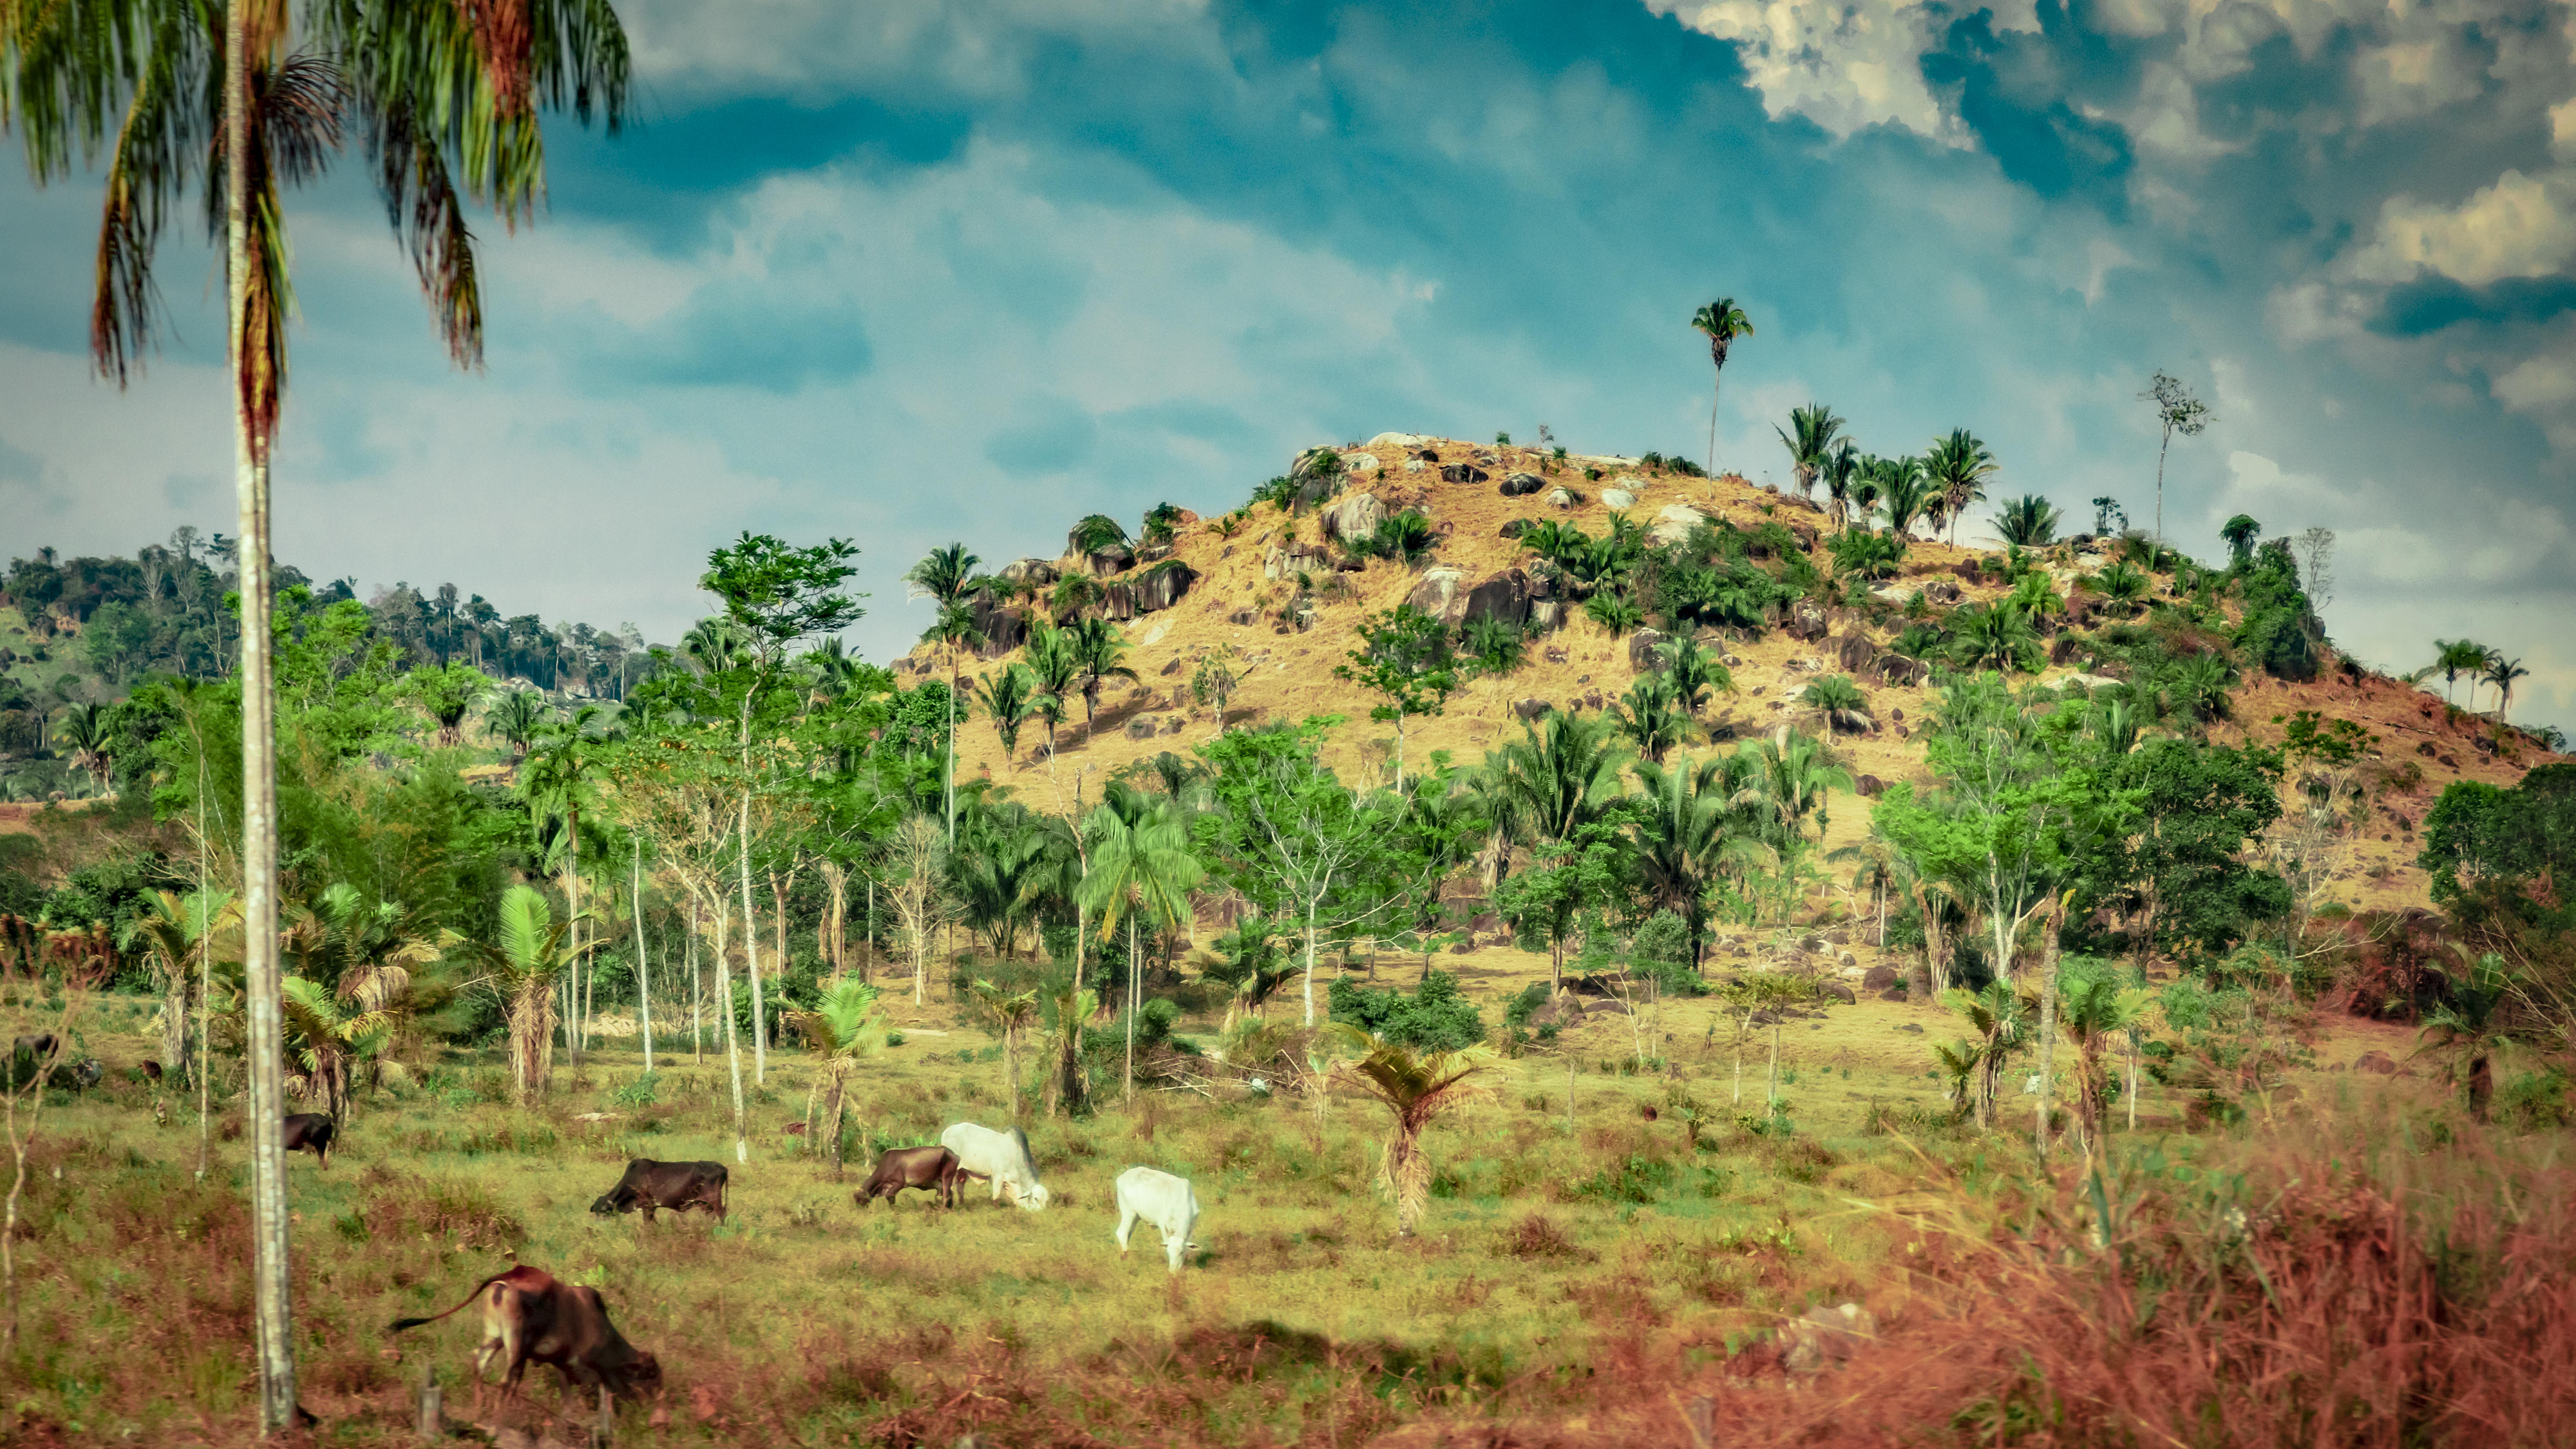 Cows graze in the razed lands of the State of Rondonia in Brazil